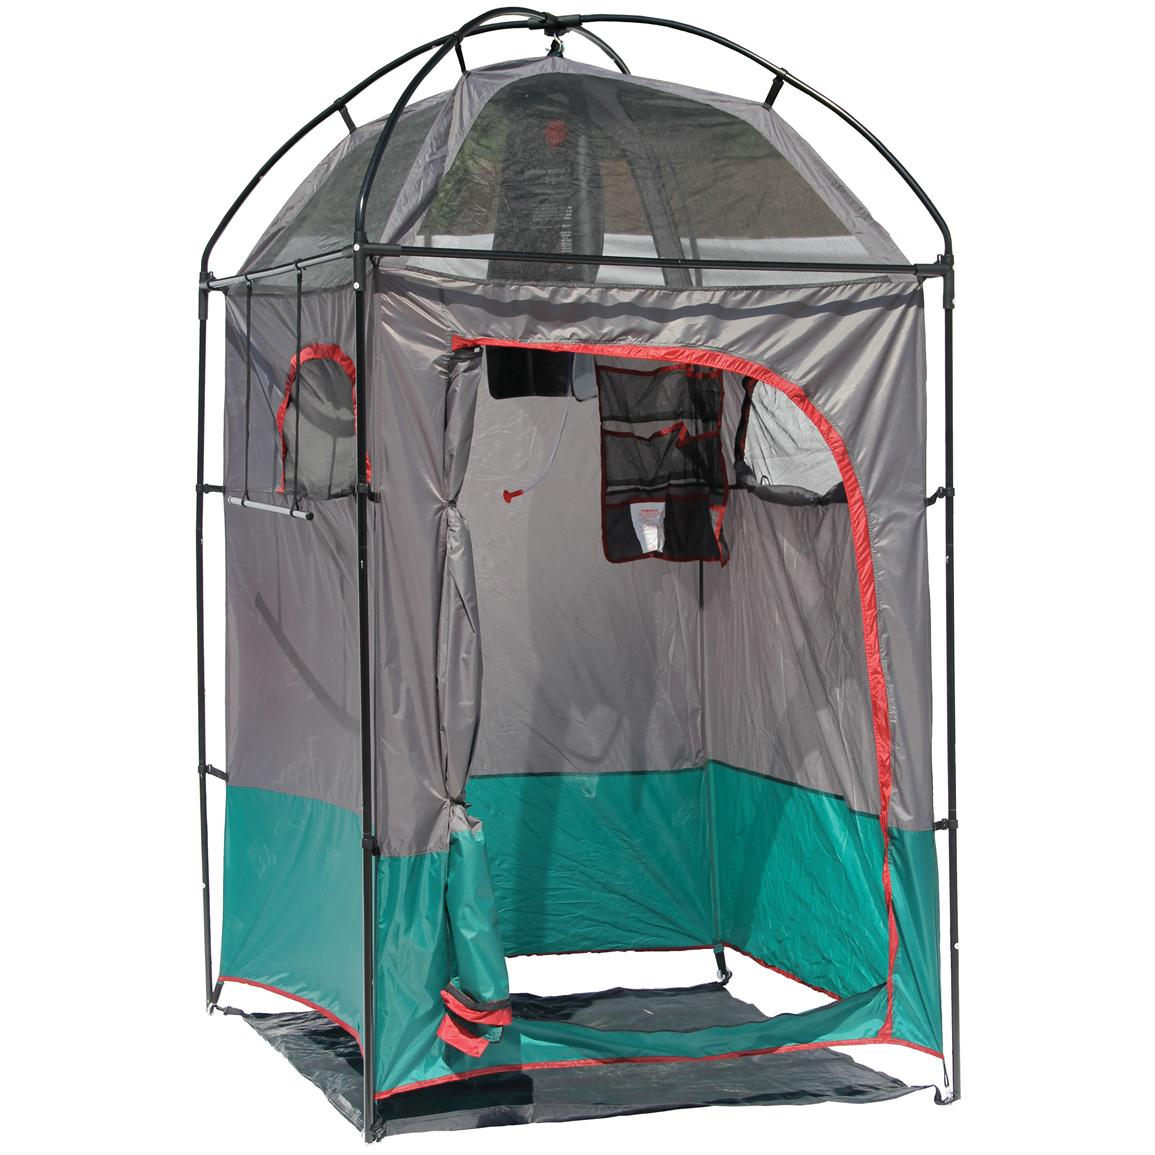 Texsport deluxe camping shower shelter combo 293794 Deluxe portable bathrooms